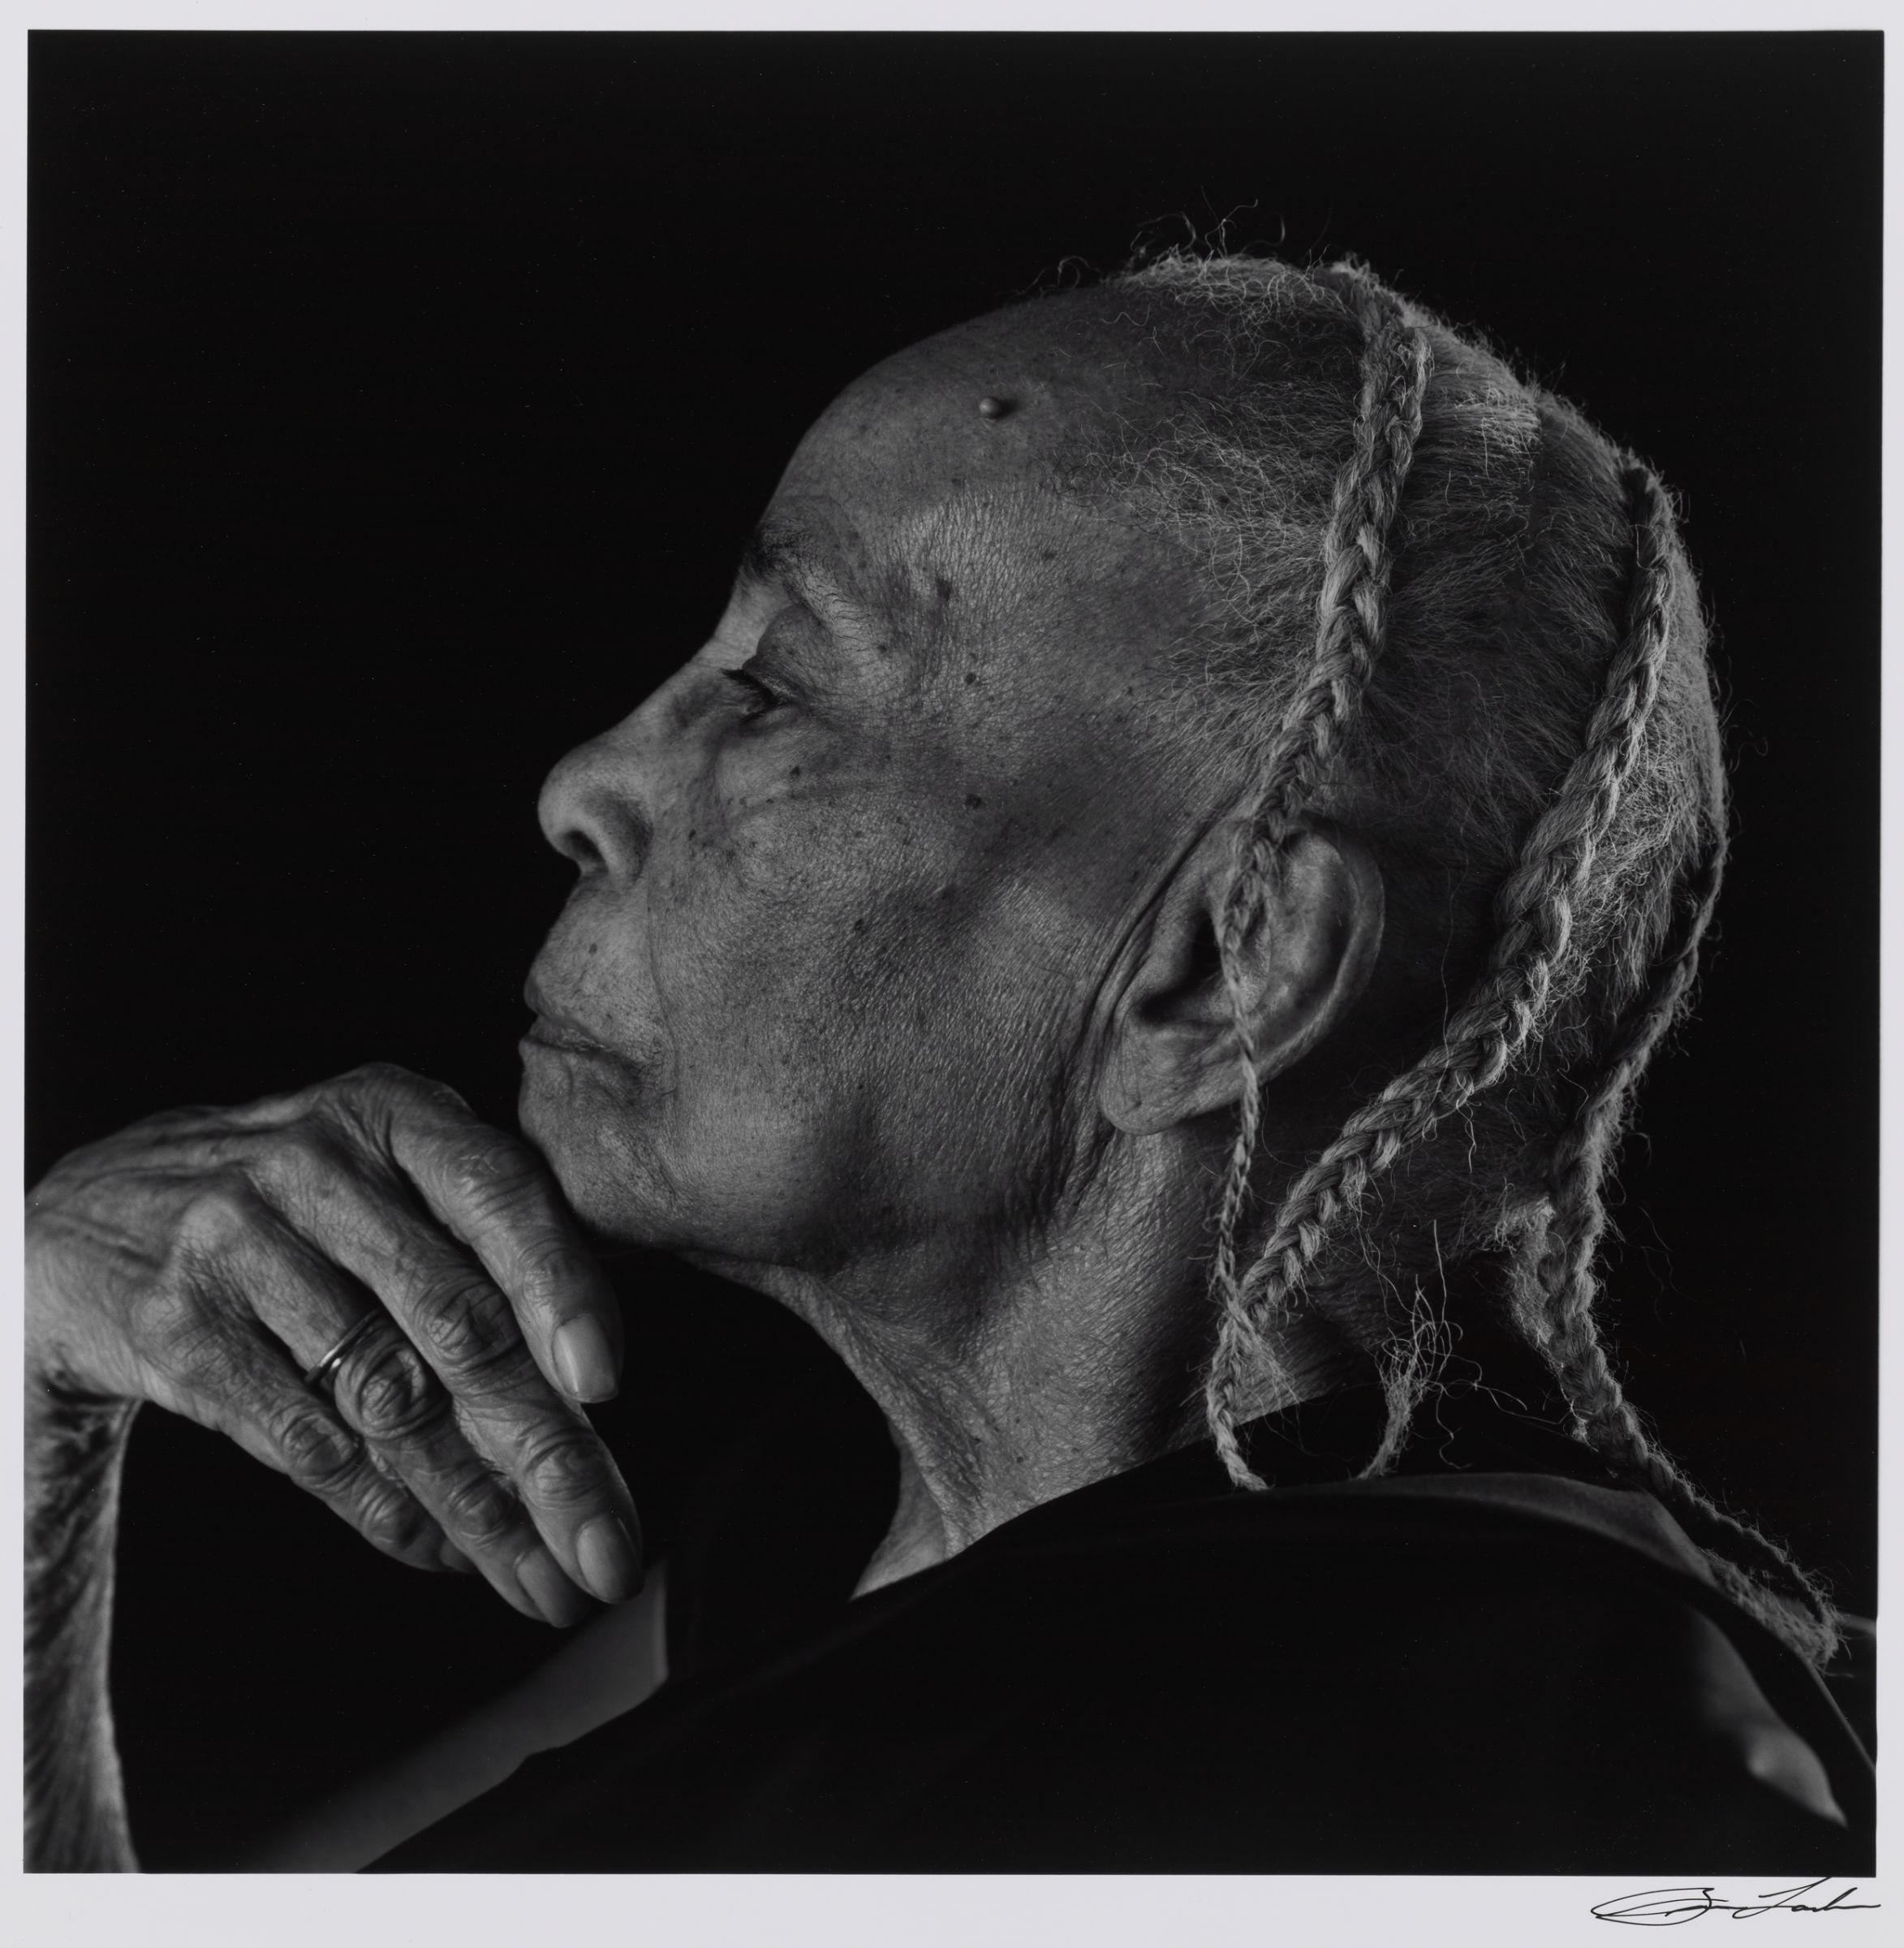 Brian Lanker, American, Septima Poinsette Clark, 1987. Gelatin silver print. Harvard Art Museums/Fogg Museum, Schneider/Erdman Printer's Proof Collection, partial gift, and partial purchase through the Margaret Fisher Fund, 2011.285.